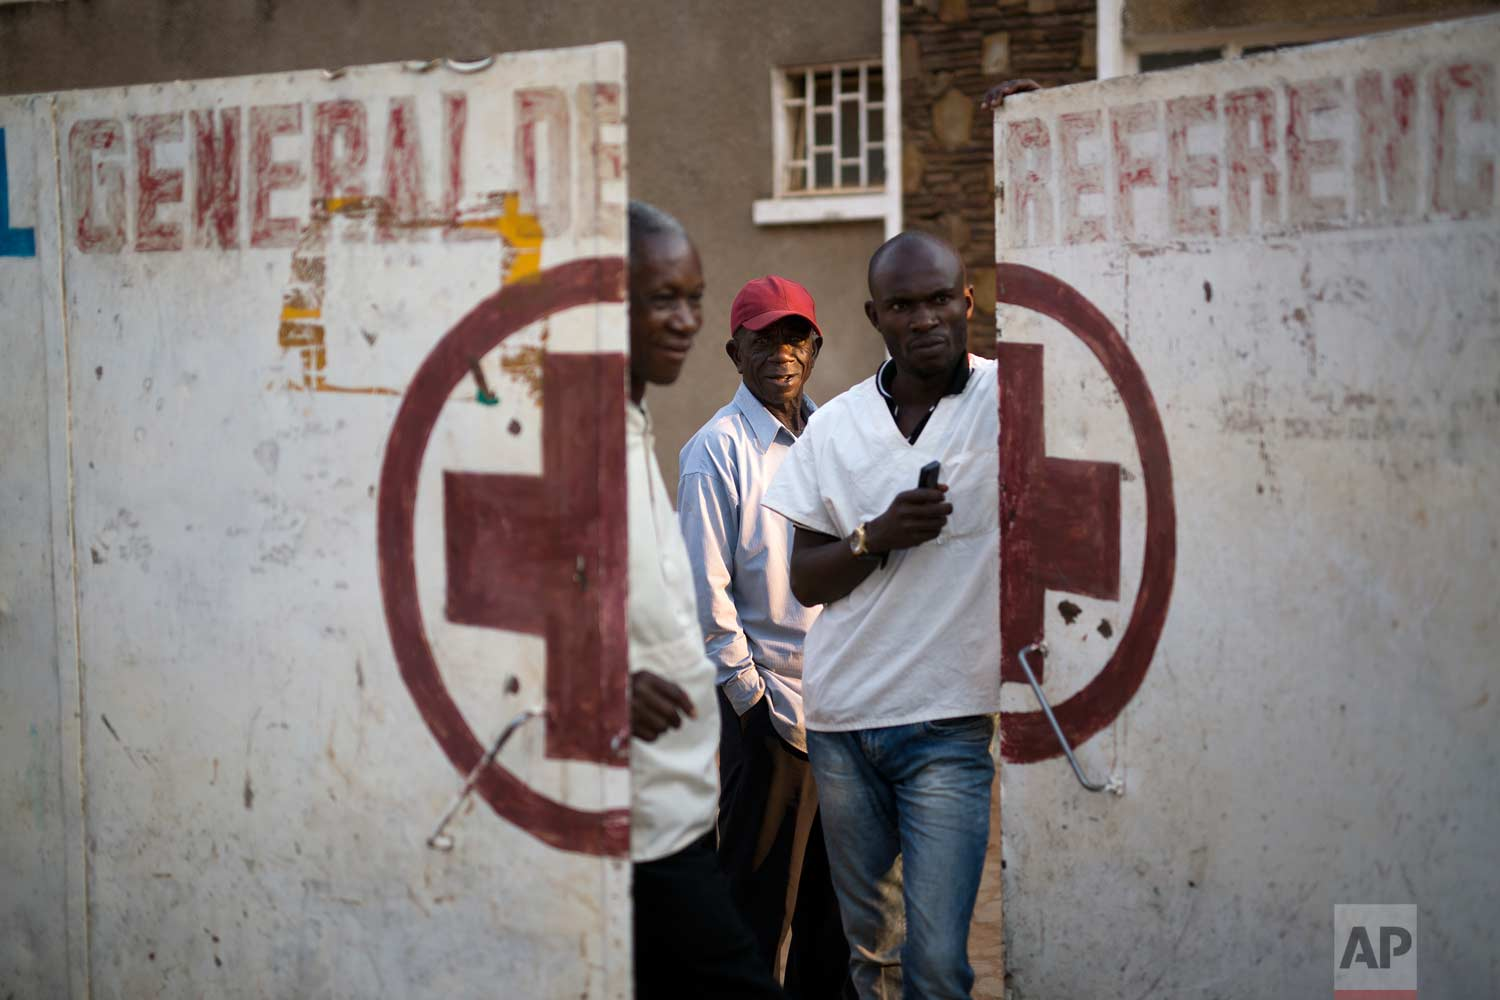 Employees guard the door of the Katuba Reference Hospital in Lubumbashi, Democratic Republic of the Congo on Monday, Aug. 13, 2018. (AP Photo/Jerome Delay)